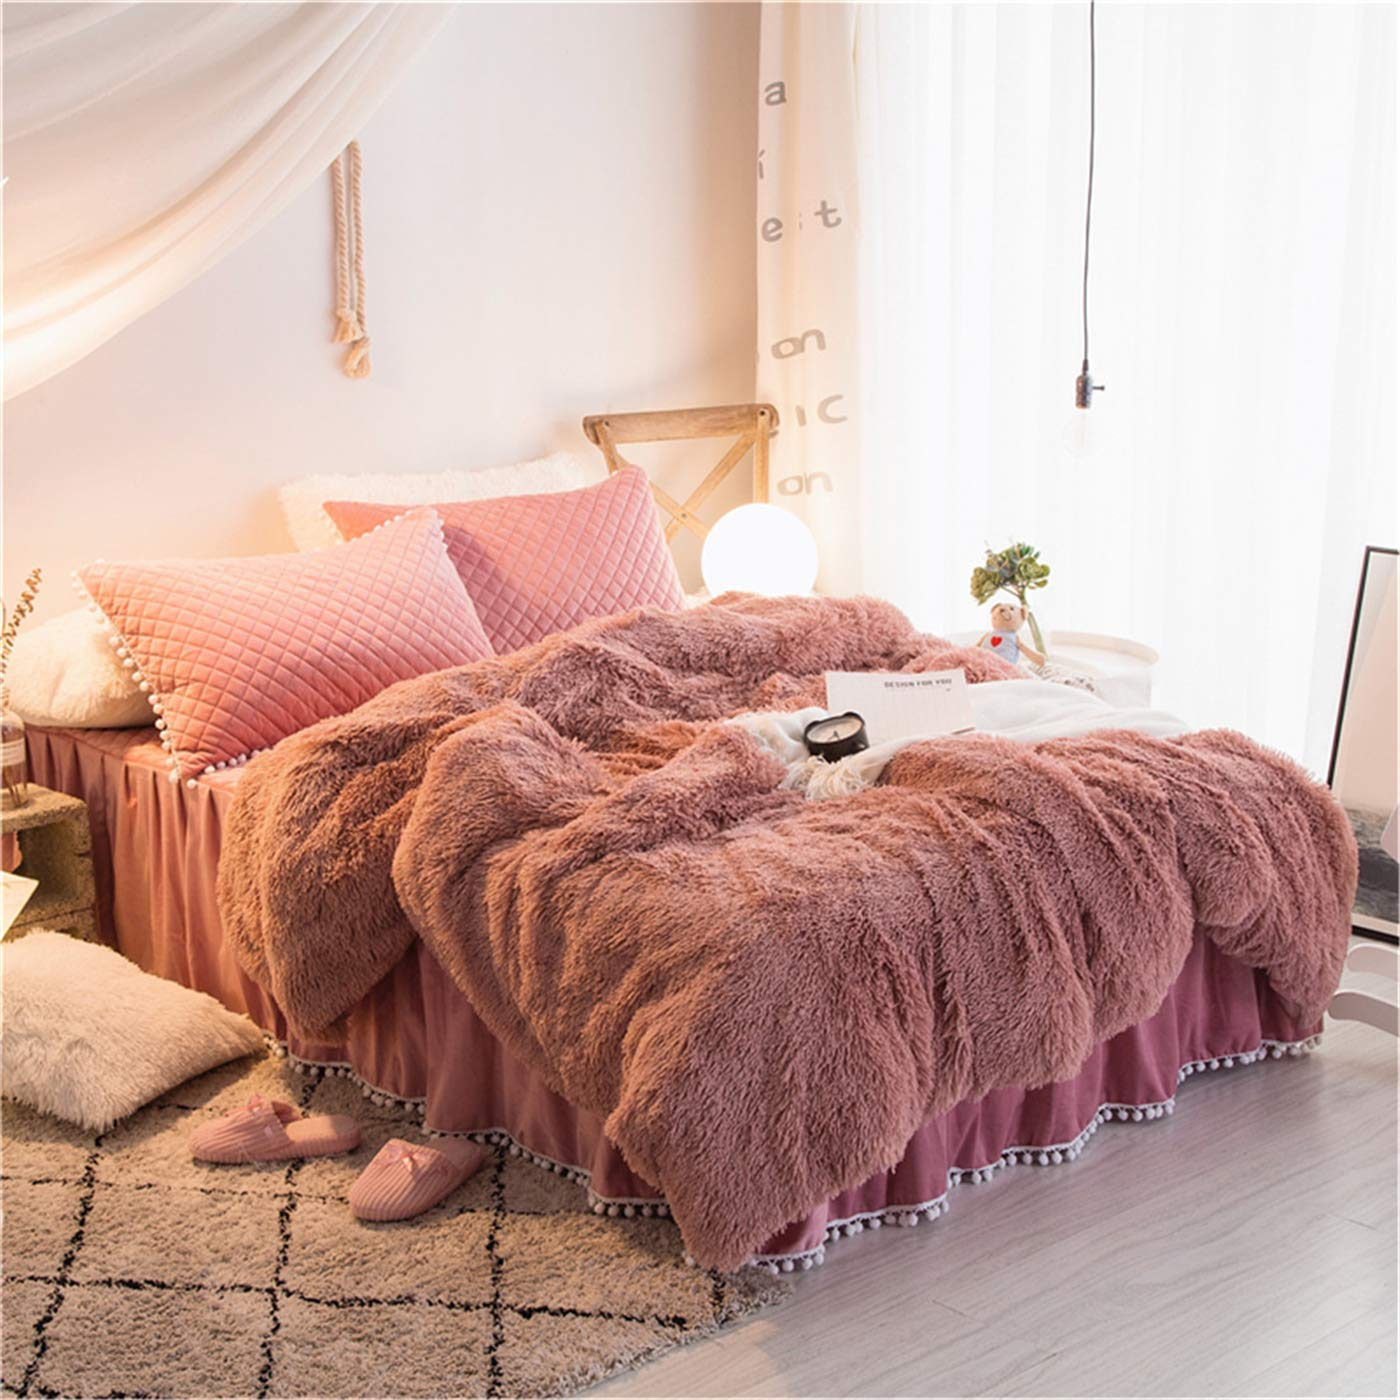 MooWoo 4PCS Shaggy Bedding Sets, 1 Velvet Flannel Duvet Cover + 1 Quilted Ruffle Bed Sheet Skirt + 2 Pompoms Fringe Pillow Sham, Zipper Closure Velvet Bedding Sets (Dusty Rose, Queen)